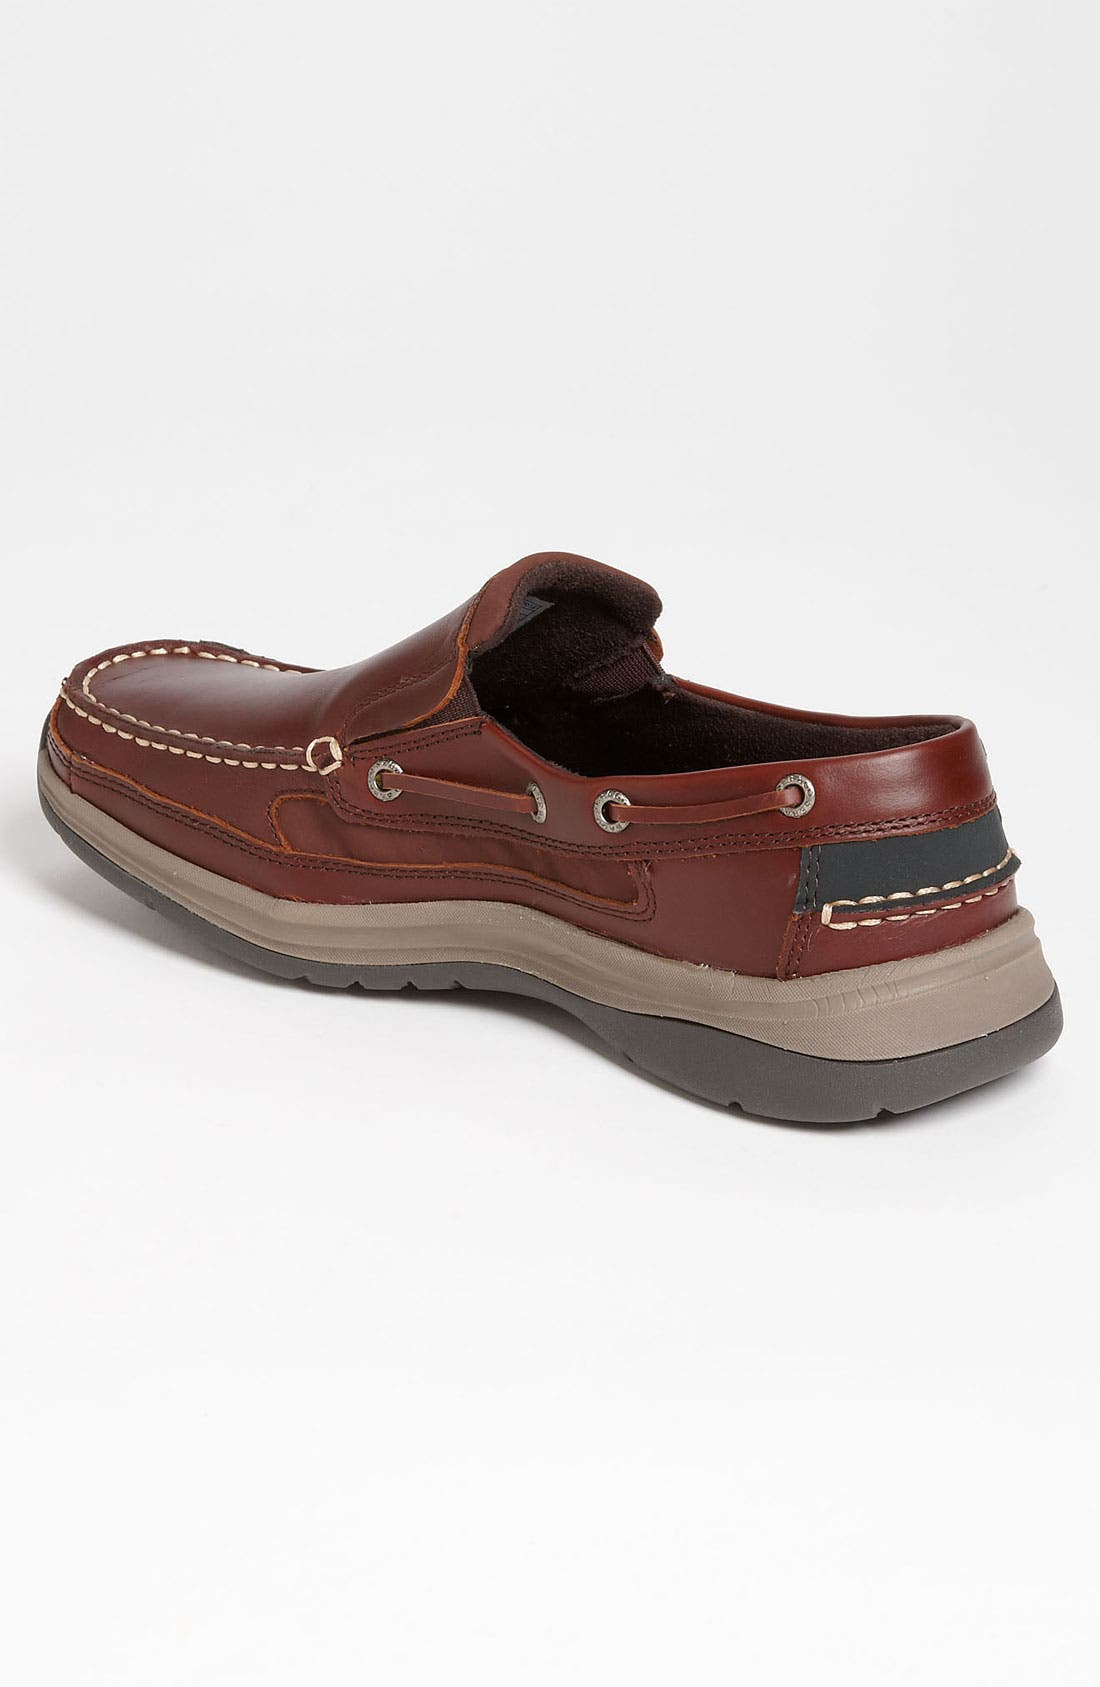 Alternate Image 2  - Sebago 'Bowman' Boat Shoe (Online Only)